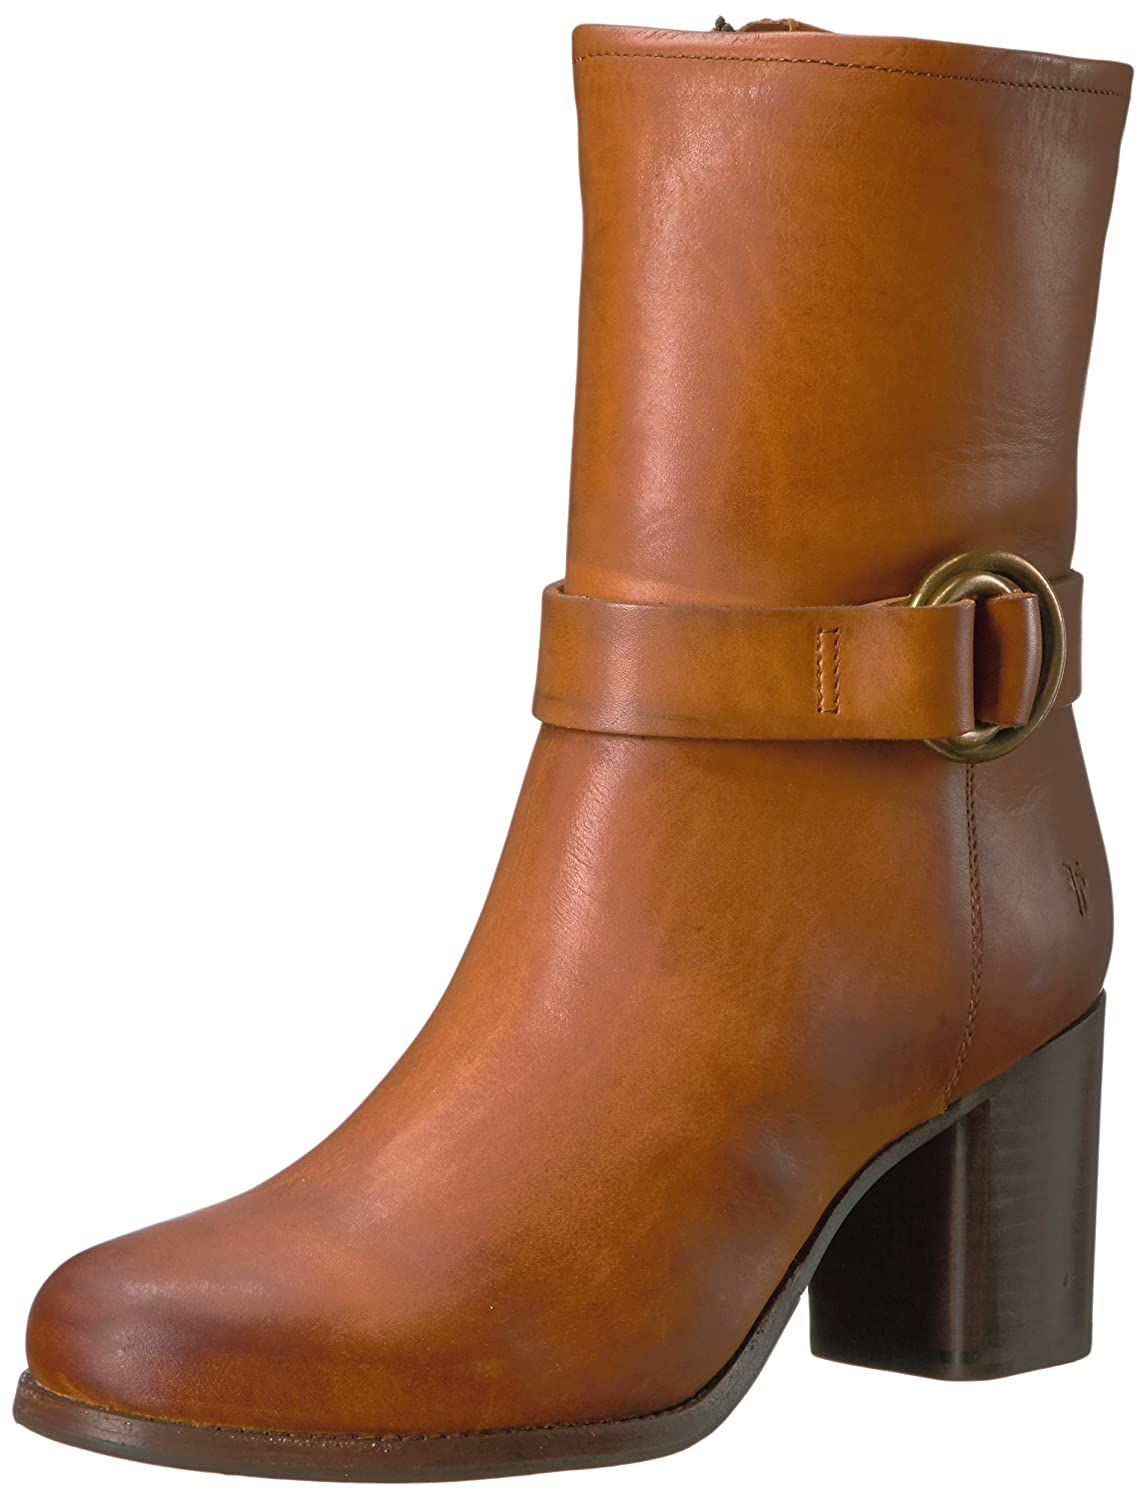 FRYE Women's Addie Harness Mid Boot B01MY72DL8 5.5 B(M) US|Brown Smooth Vintage Leather